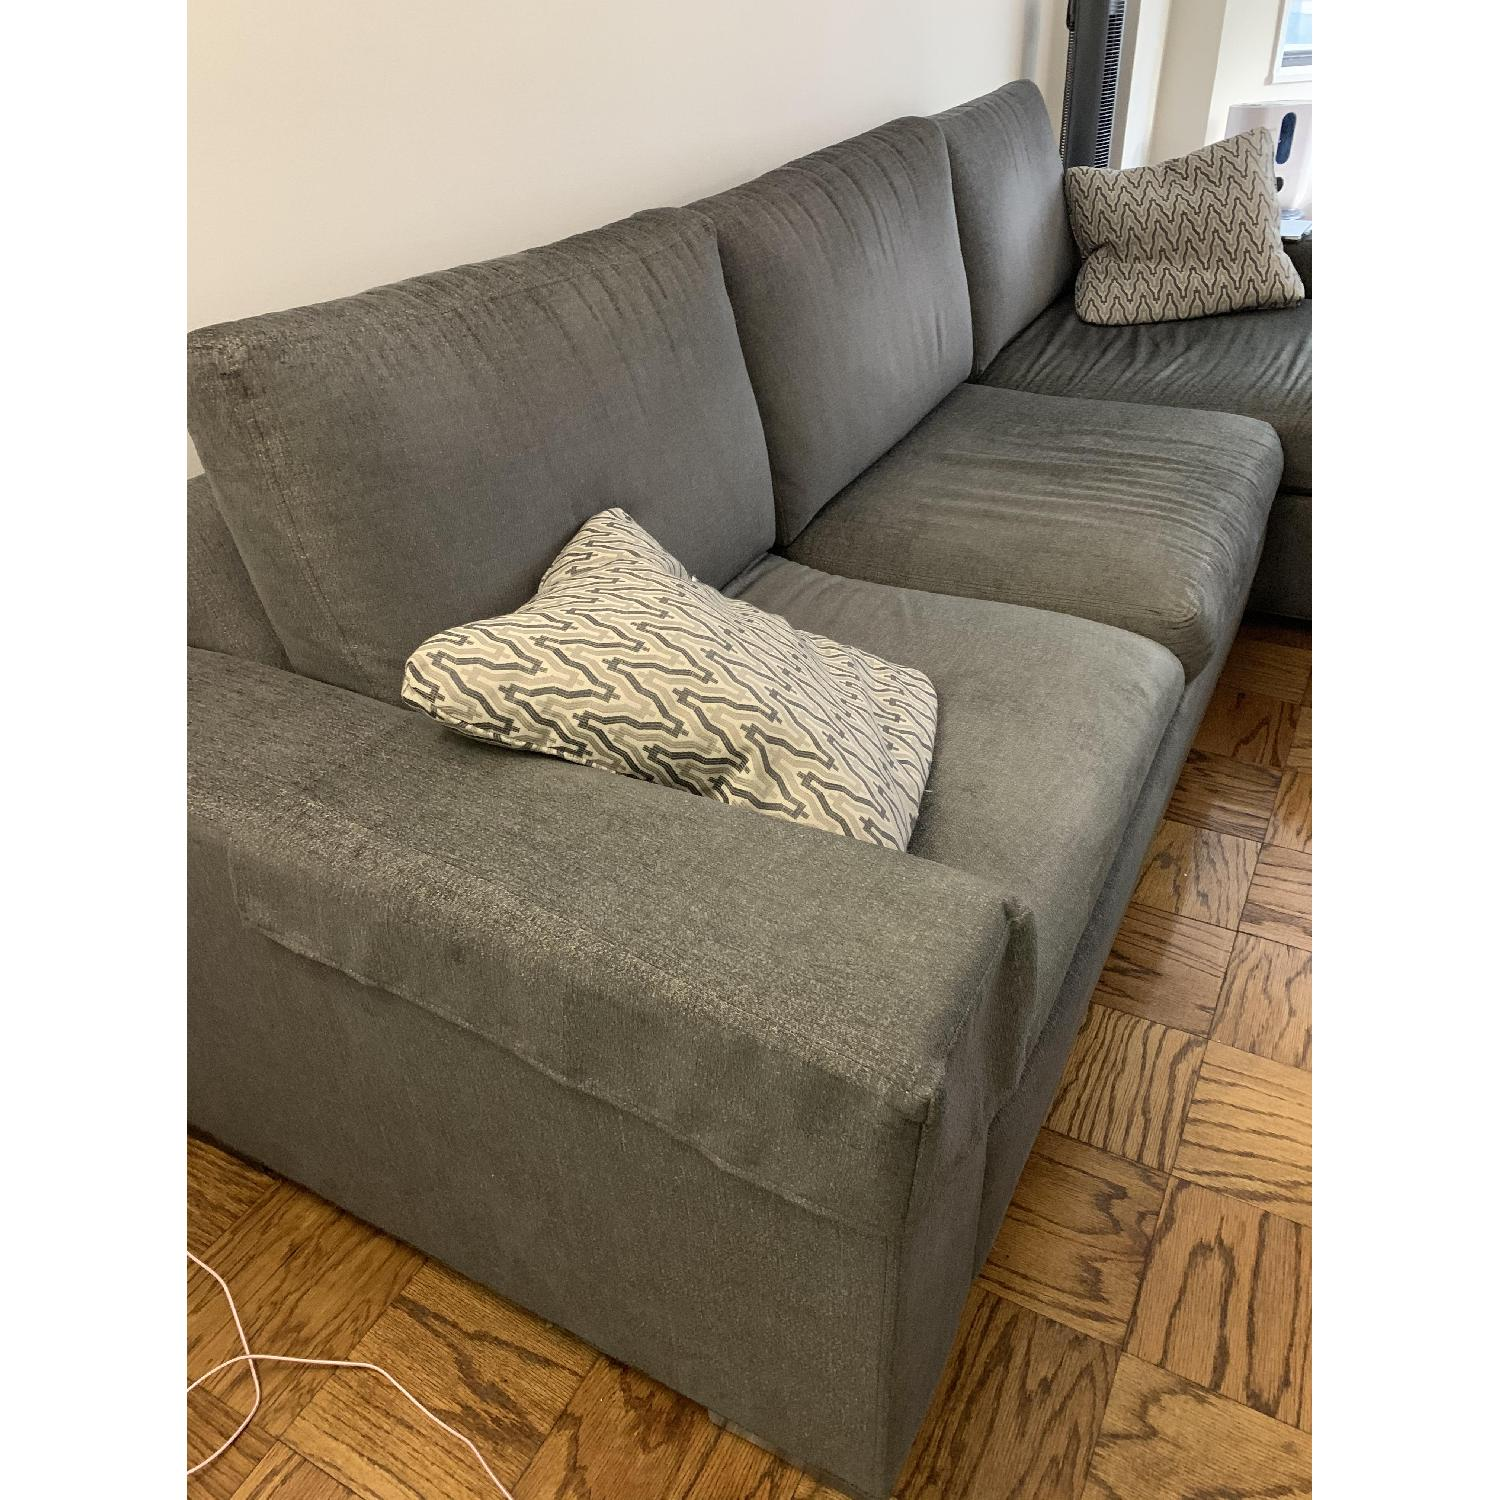 Ethan Allen Conway Grey 2-Piece Sectional Sofa - image-3